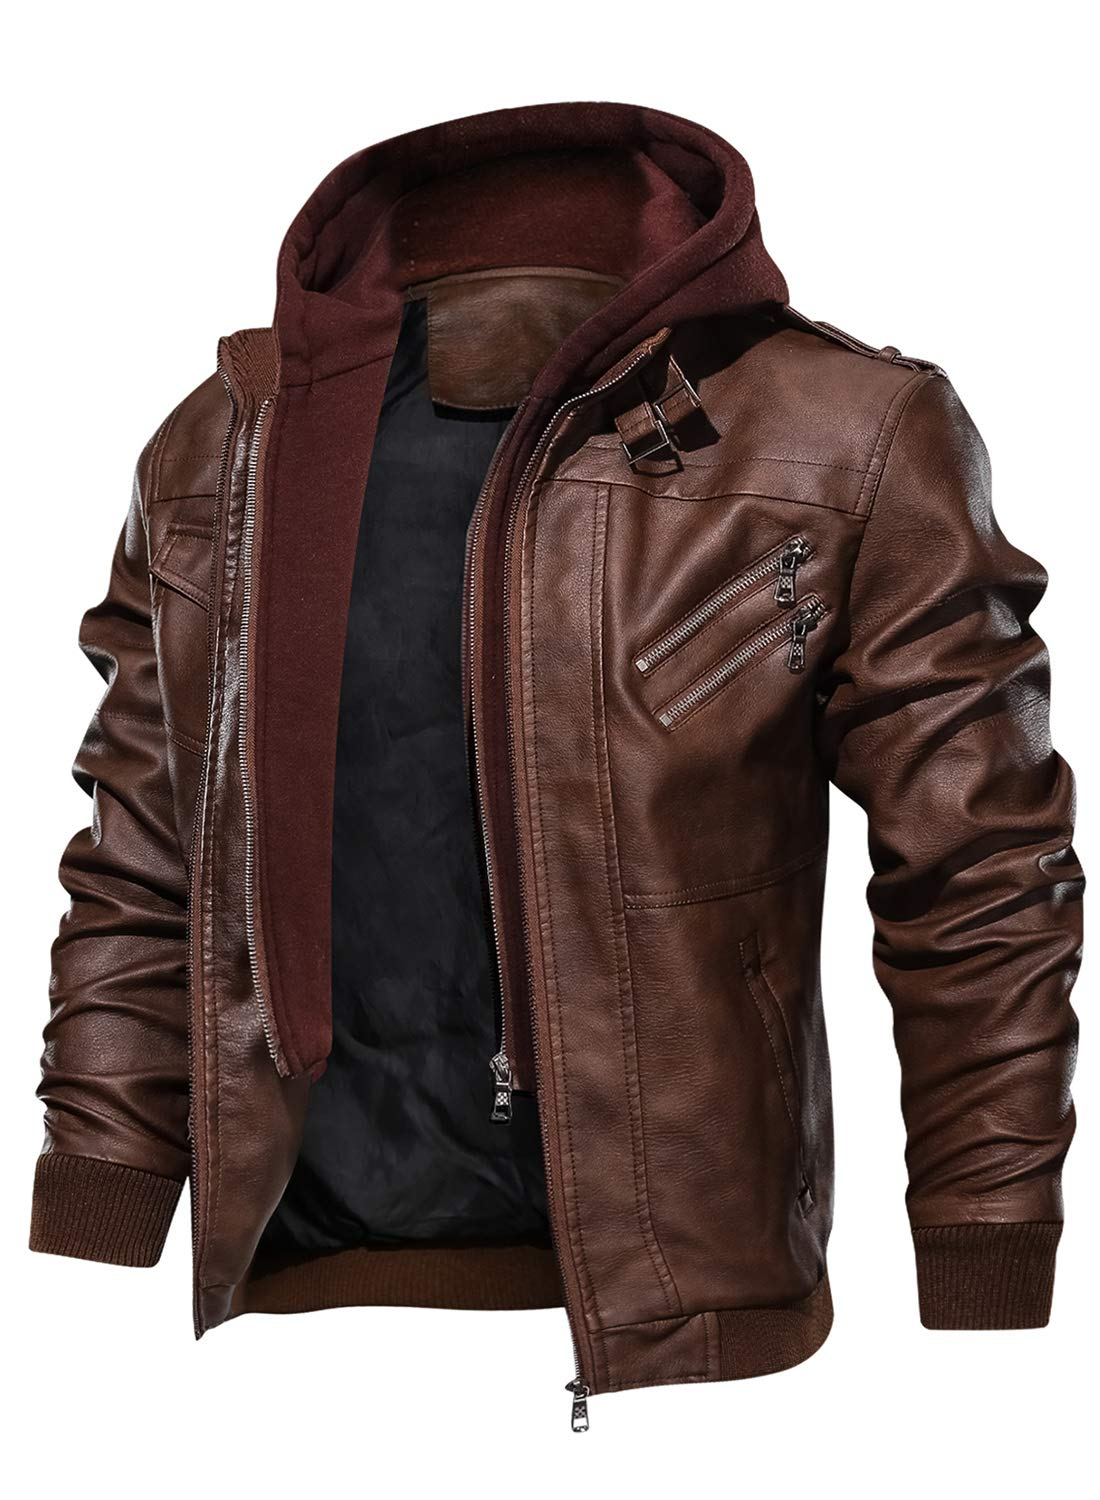 HOOD CREW Men's Casual Stand Collar PU Faux Leather Zip-Up Motorcycle Bomber Jacket with a Removable Hood Brown by HOOD CREW